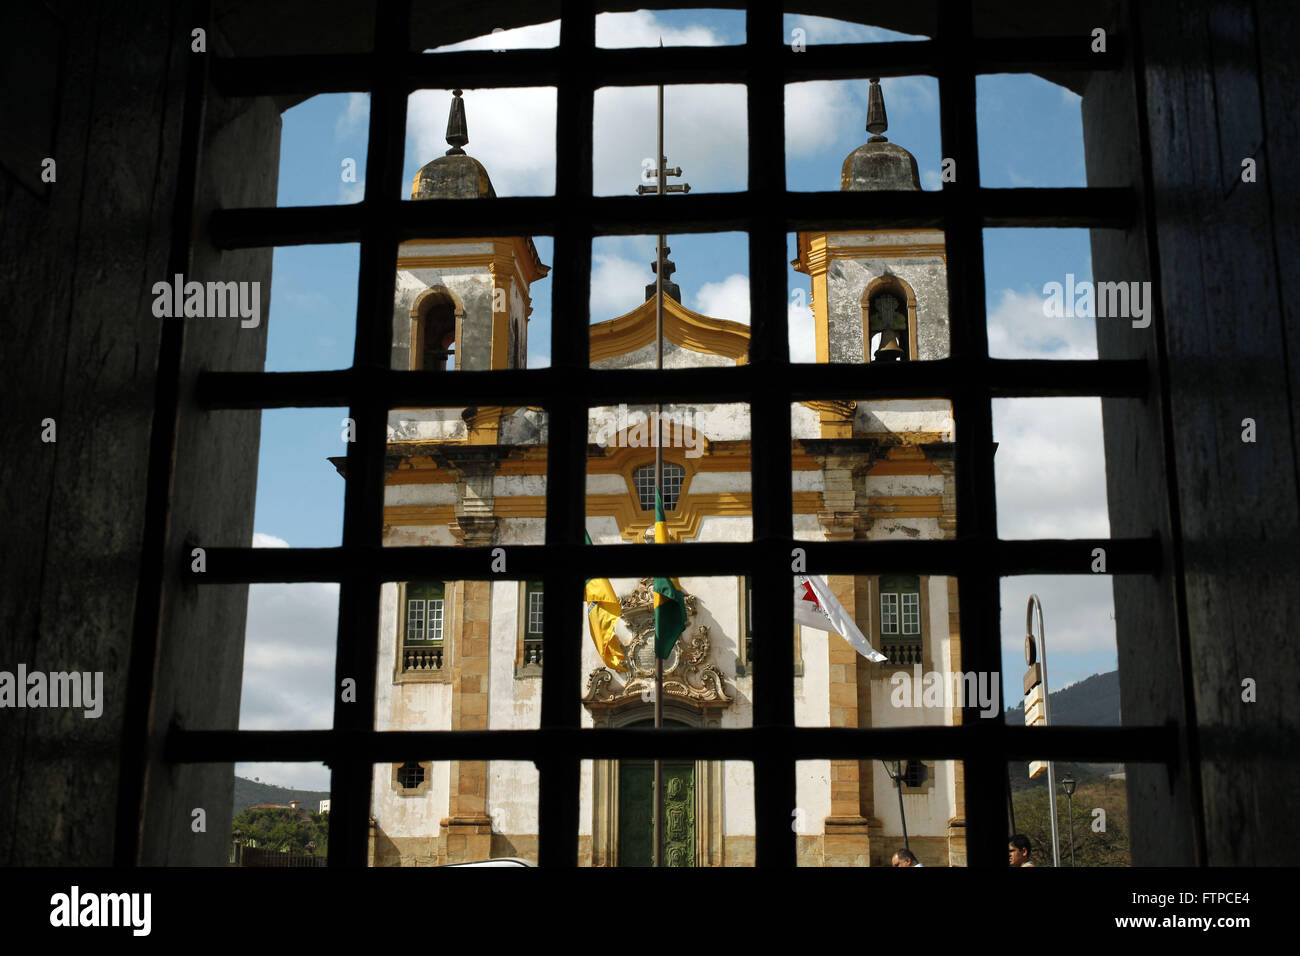 Church of Sao Francisco de Assis view from window of City Hall Stock Photo